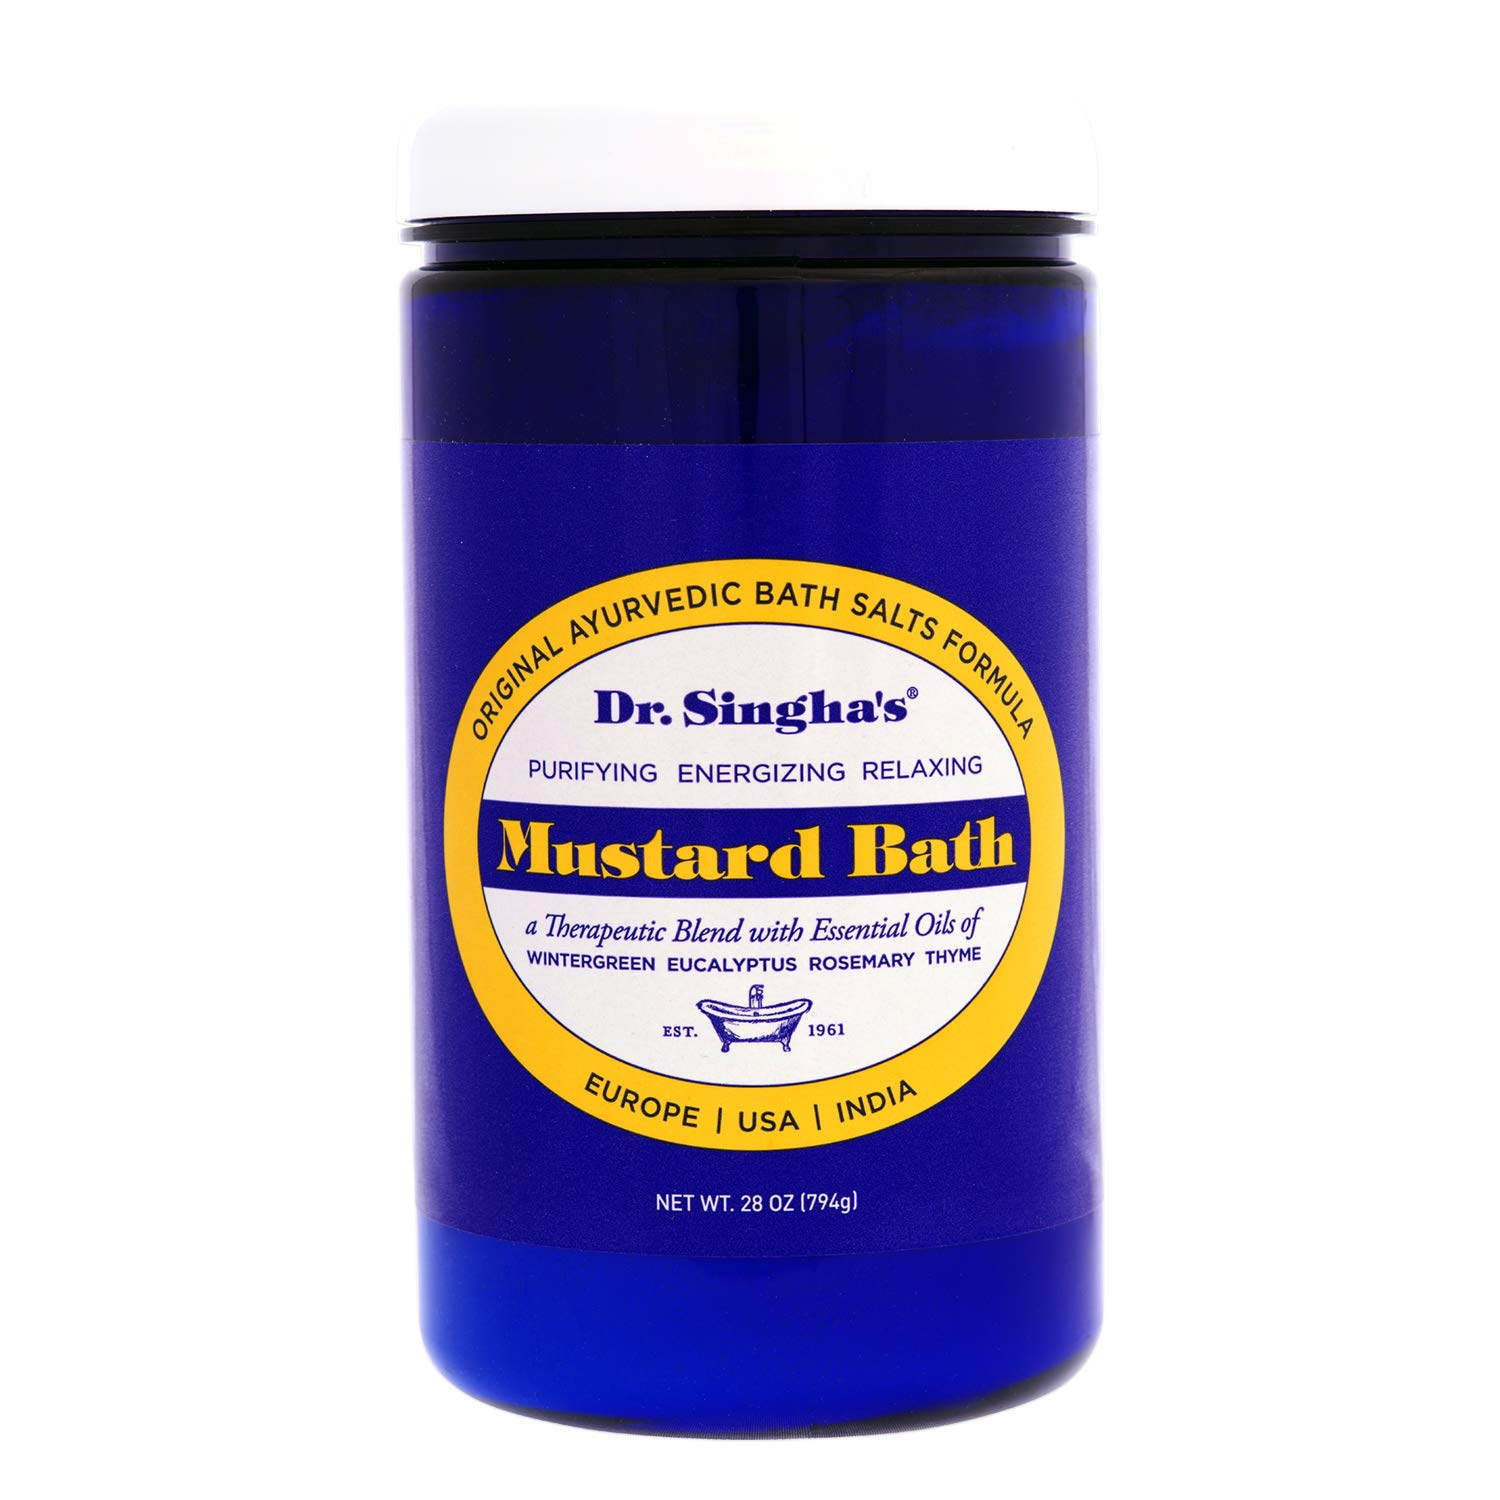 Dr. Singha's Mustard Bath, Therapeutic Bath Salts, 28 Ounce - Relaxing Bath Salts & Essential Oils Blend for Sore Muscles